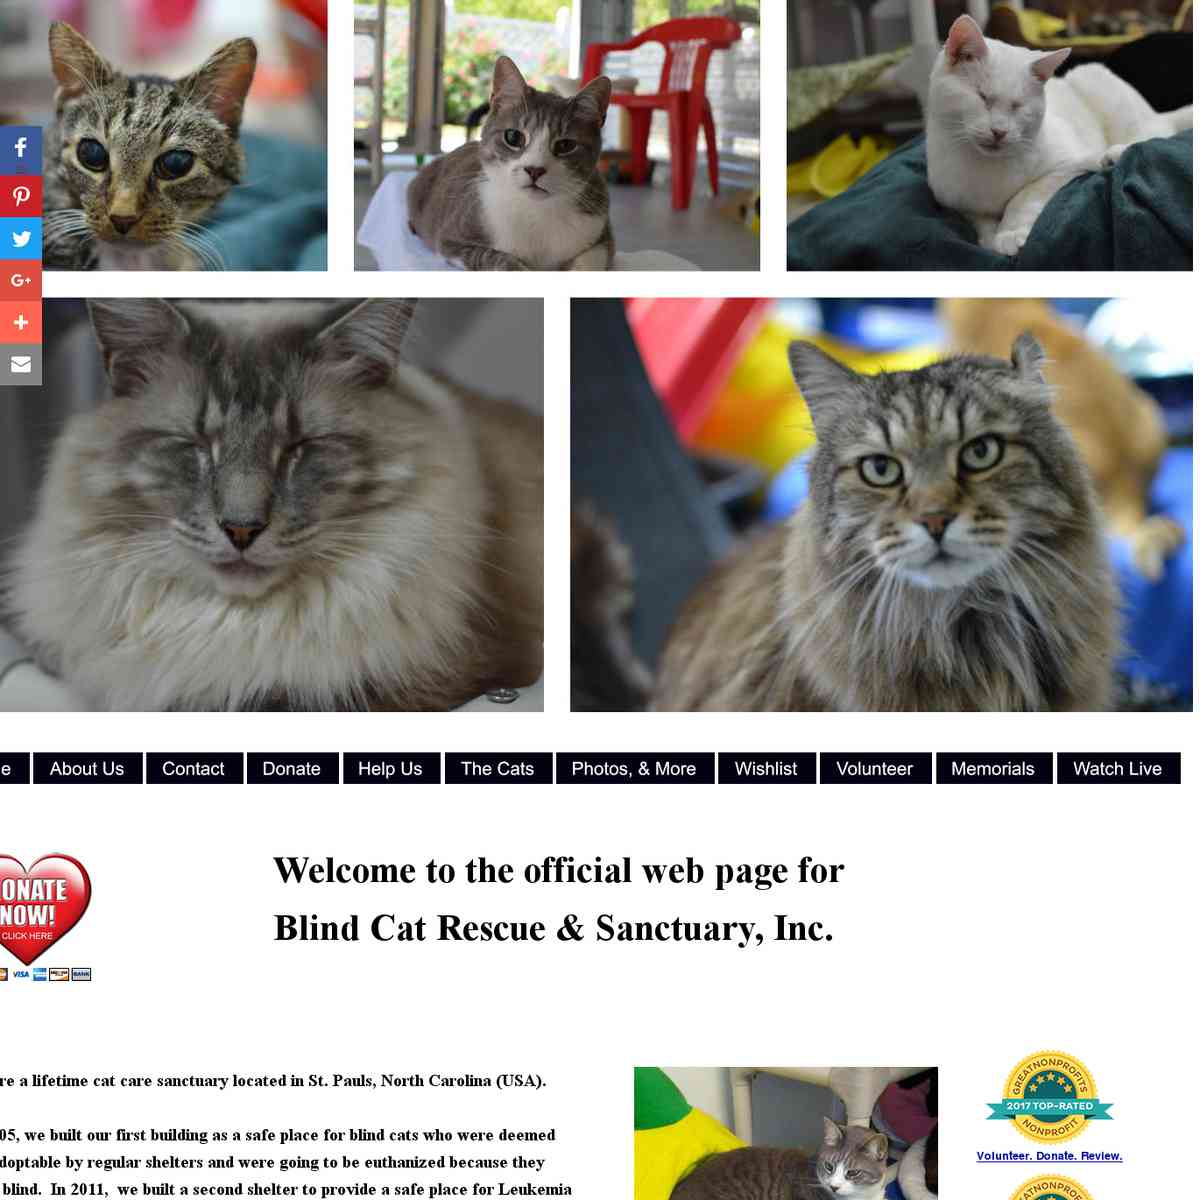 Blind Cat Rescue & Sanctuary (NC)